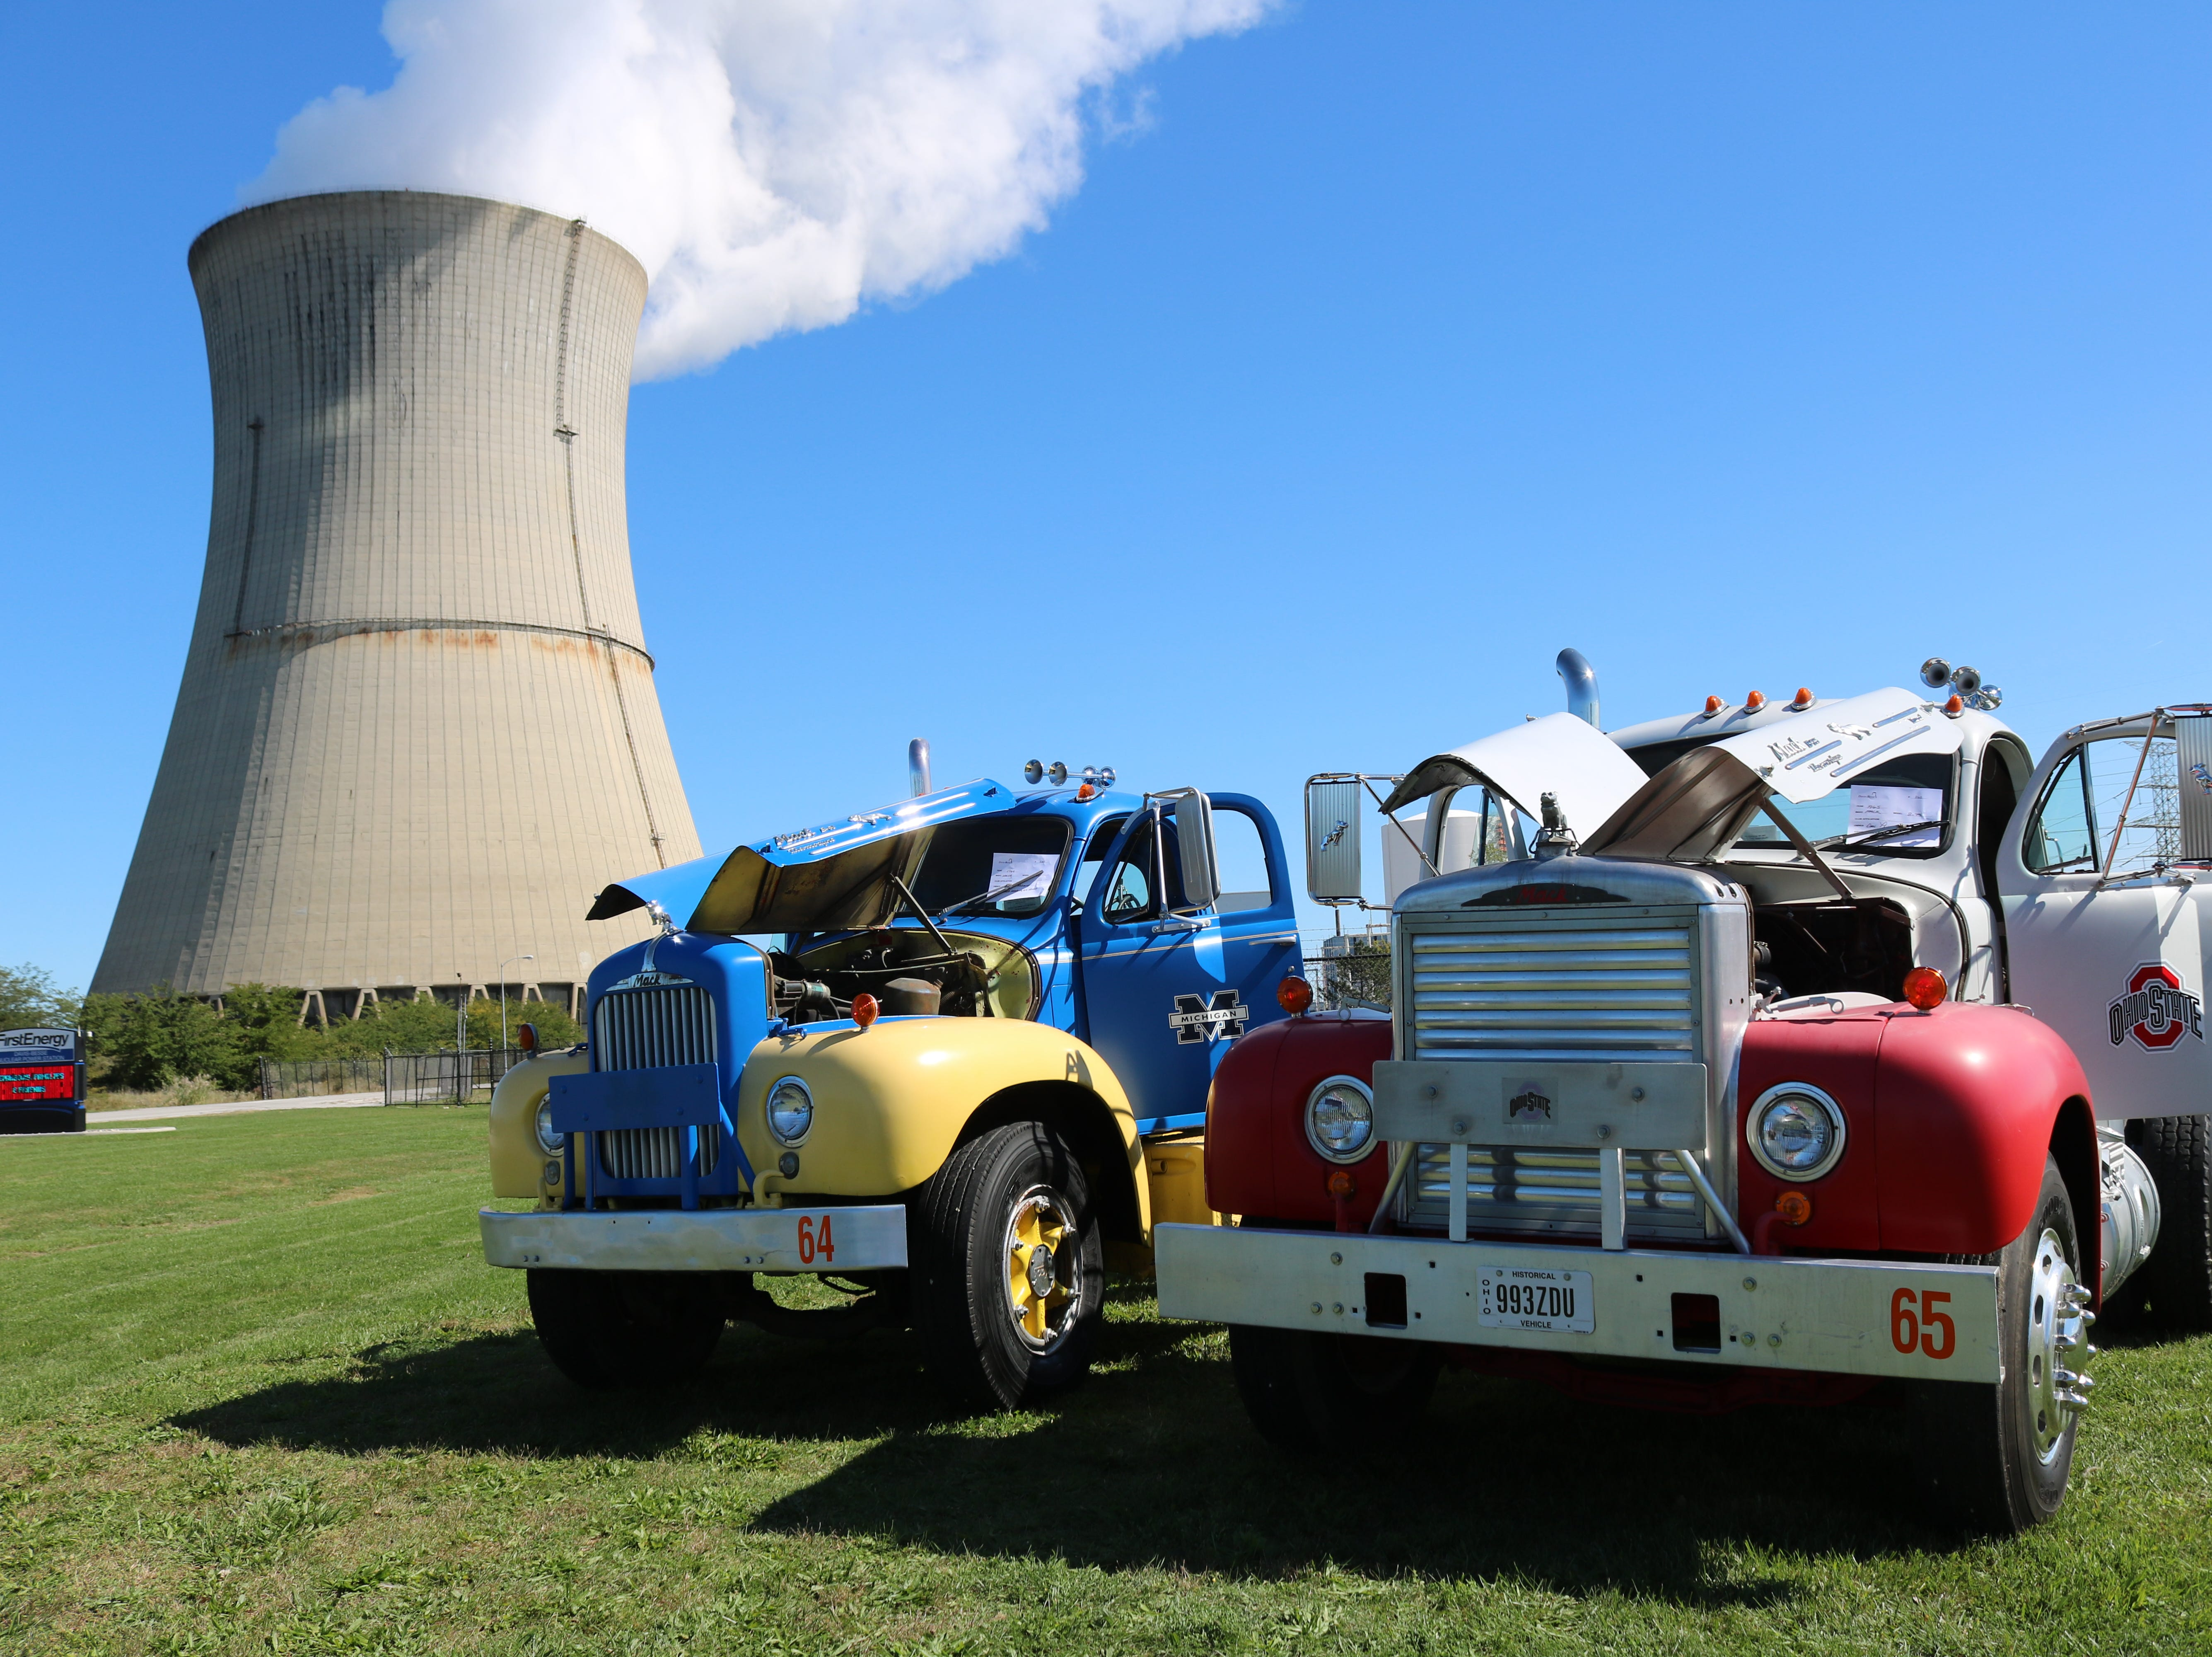 These two 1960s-era Mack trucks were painted as a pair of Ohio State and Michigan rivals at the Davis-Besse Cruisin' To The Future Car Show on Saturday.